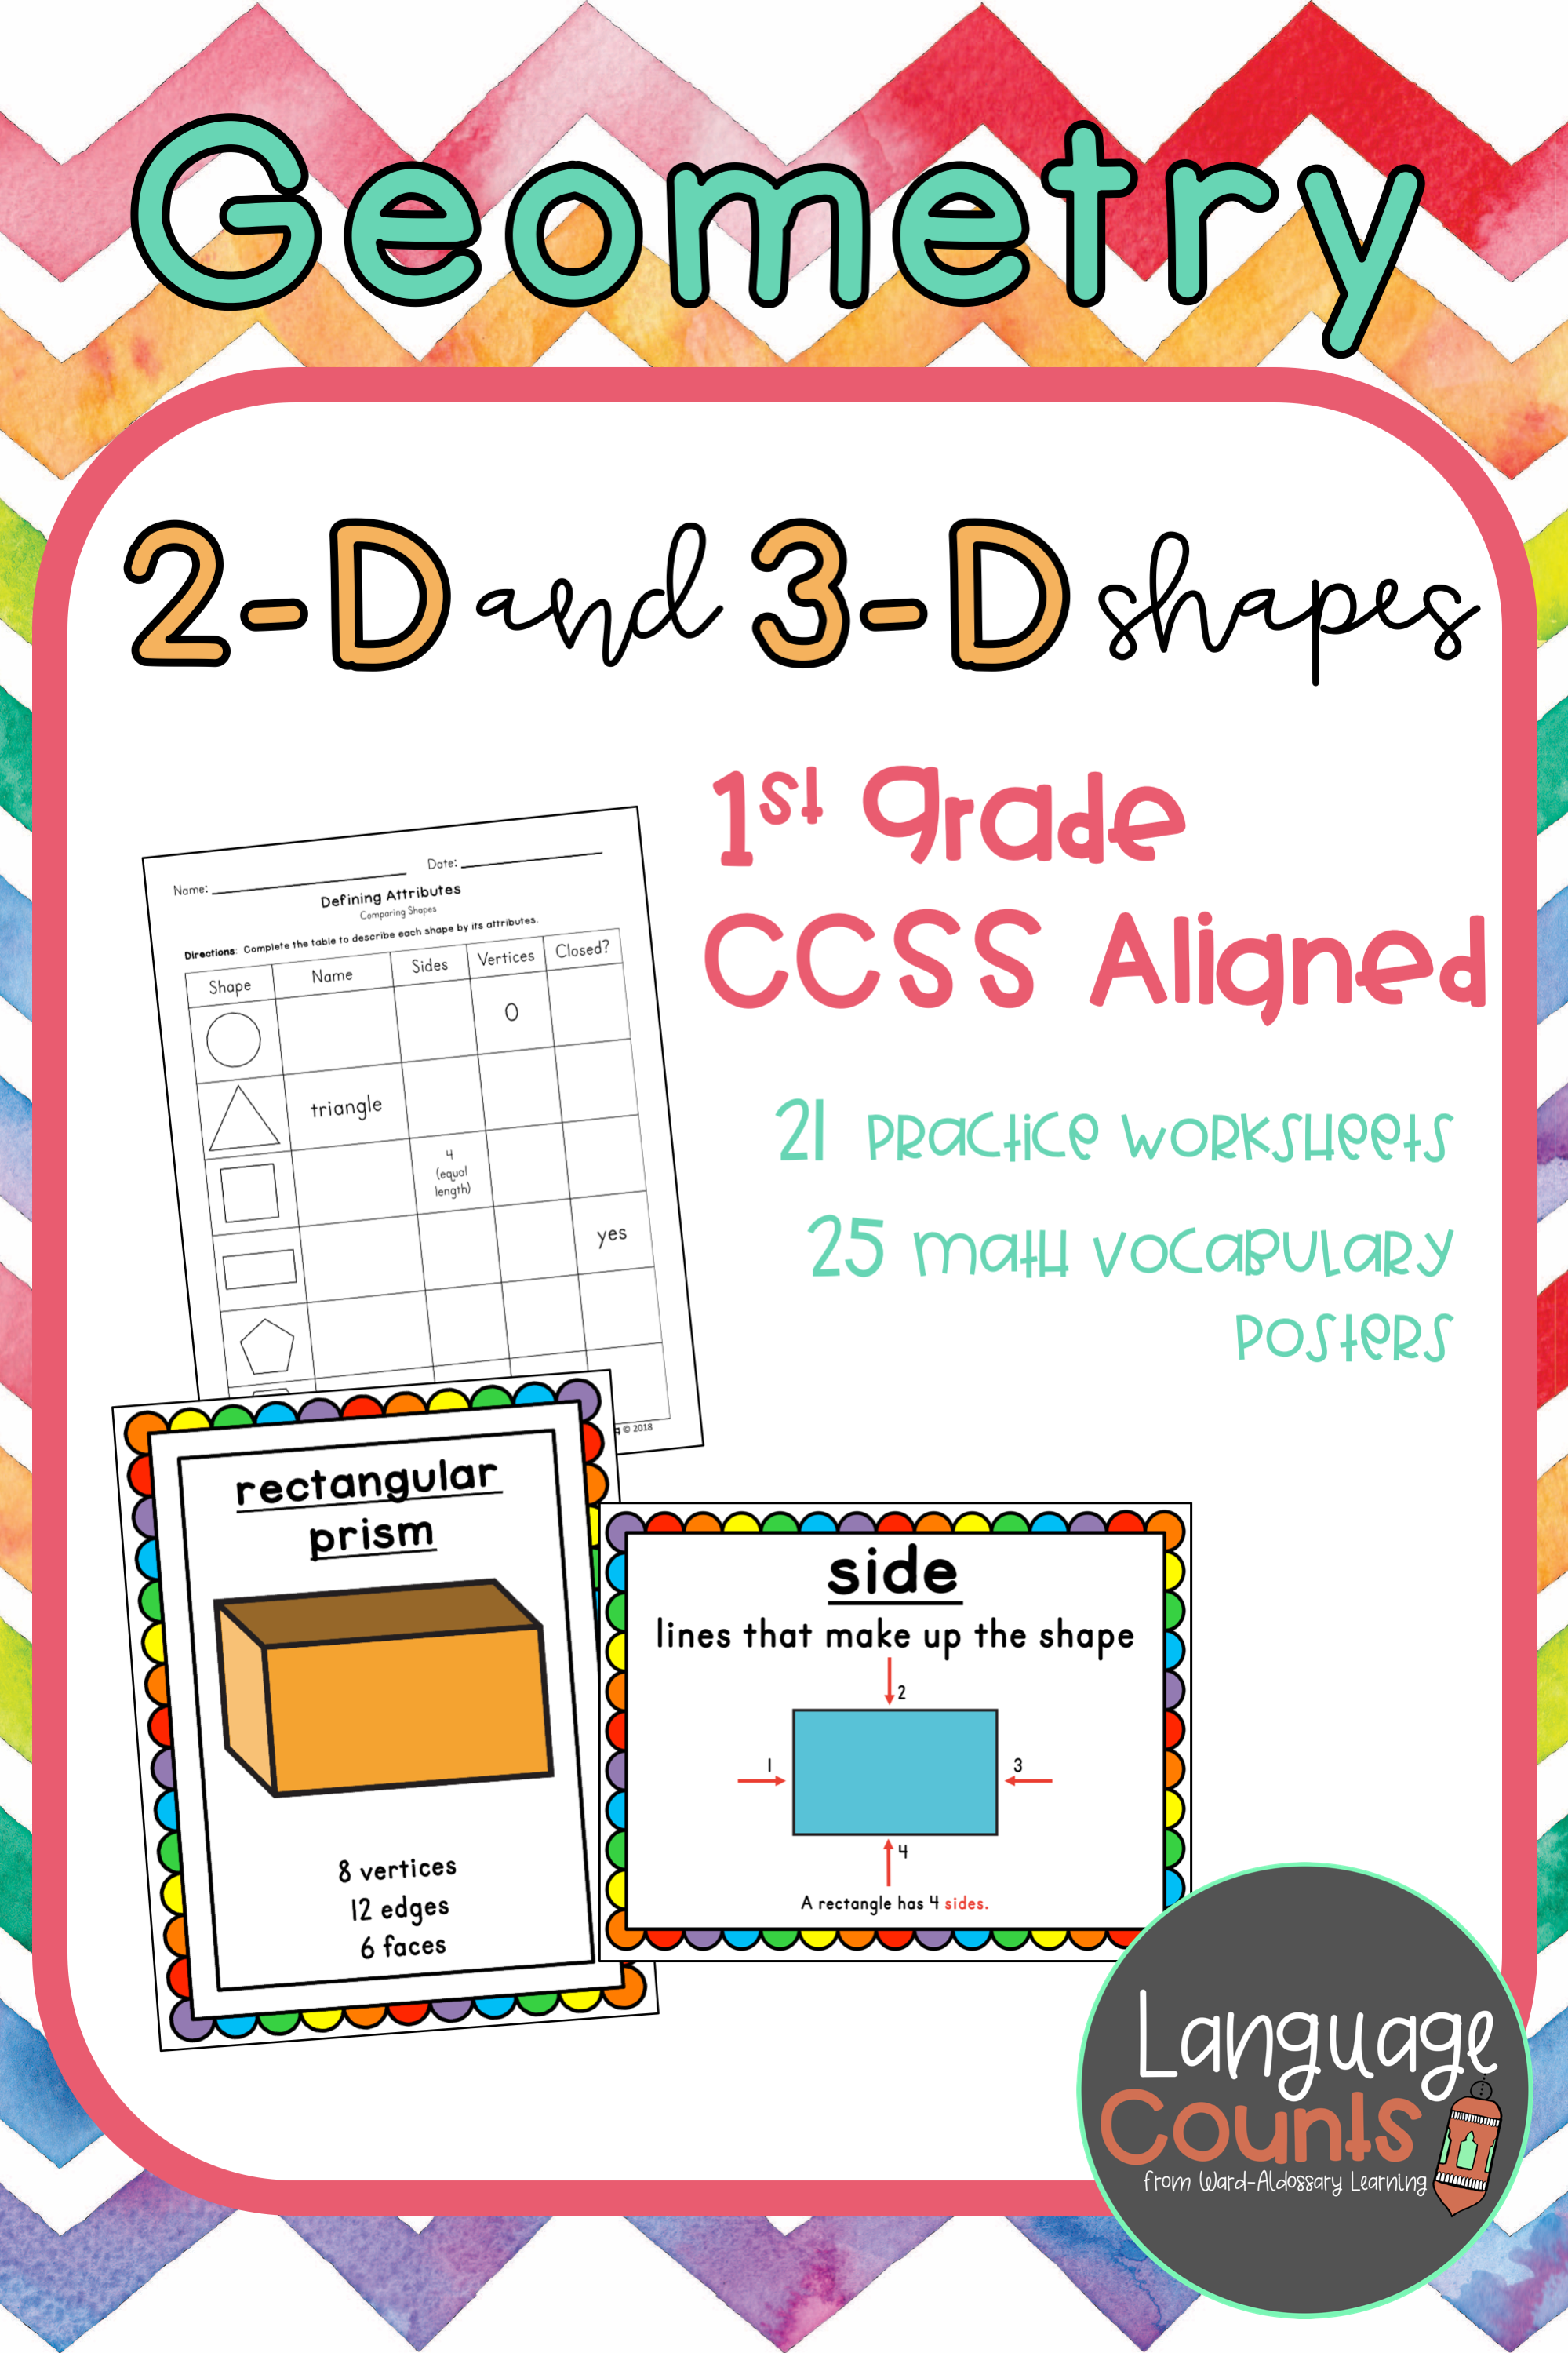 Geometry 2 D And 3 D Shapes 1st Grade 1st Grade Worksheets Elementary School Math Vocabulary Posters [ 2999 x 1999 Pixel ]